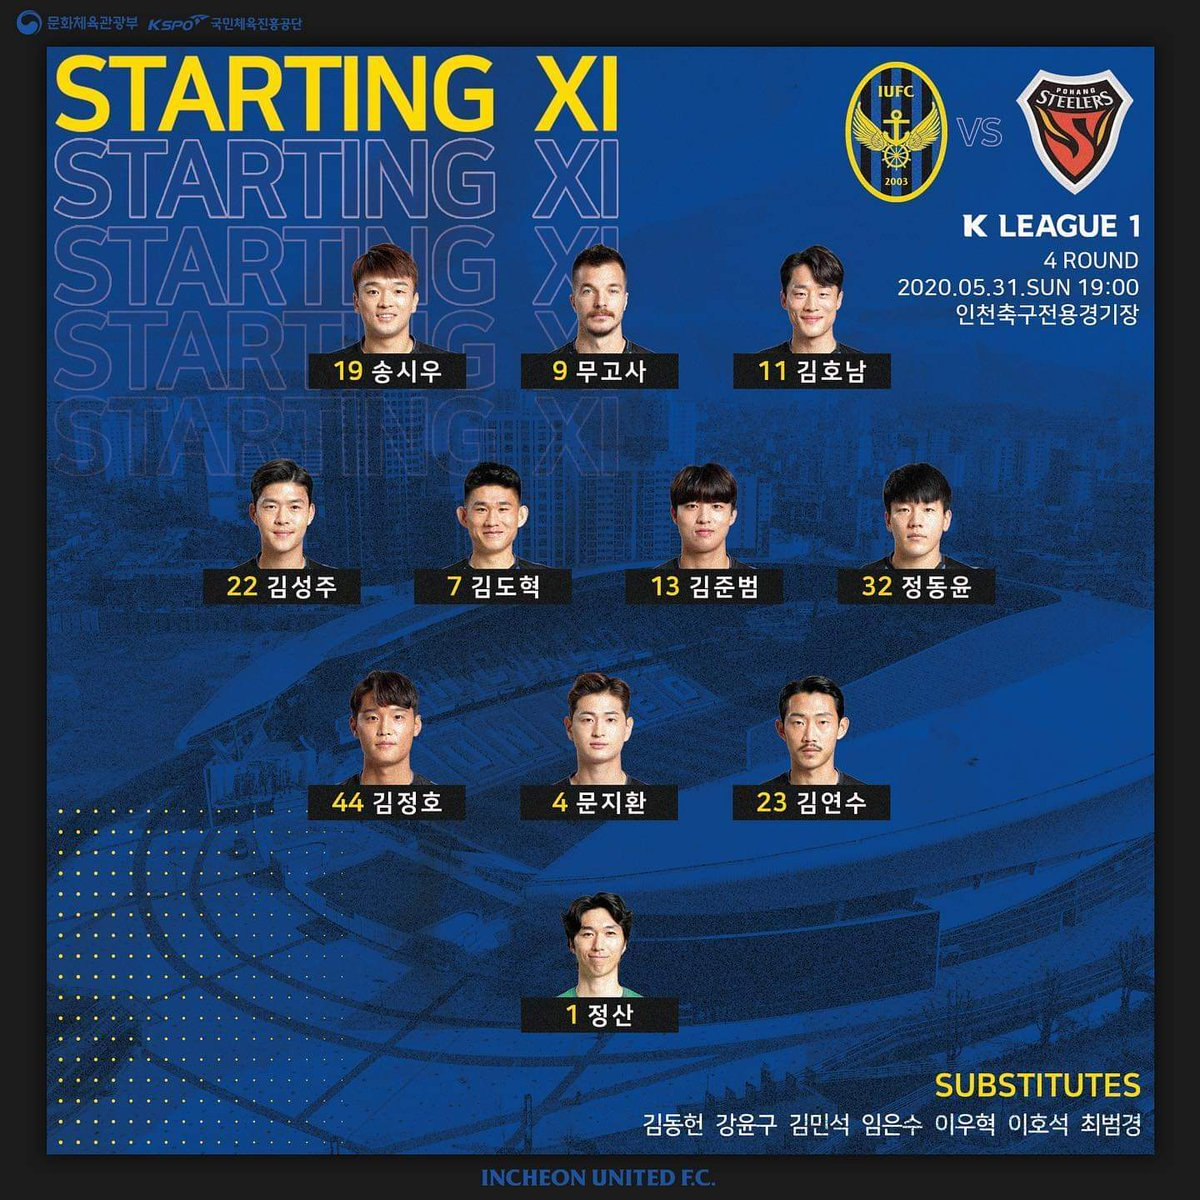 Incheon United starting XI for this evenings game against Pohang Steelers. Song Si-woo and Kim Ho-nam both start today alongside Stefan Mugosa in attack. Can we finally break our goal duck?  #INCvPOH #KLeague #K리그pic.twitter.com/XIqy9ZCqAo